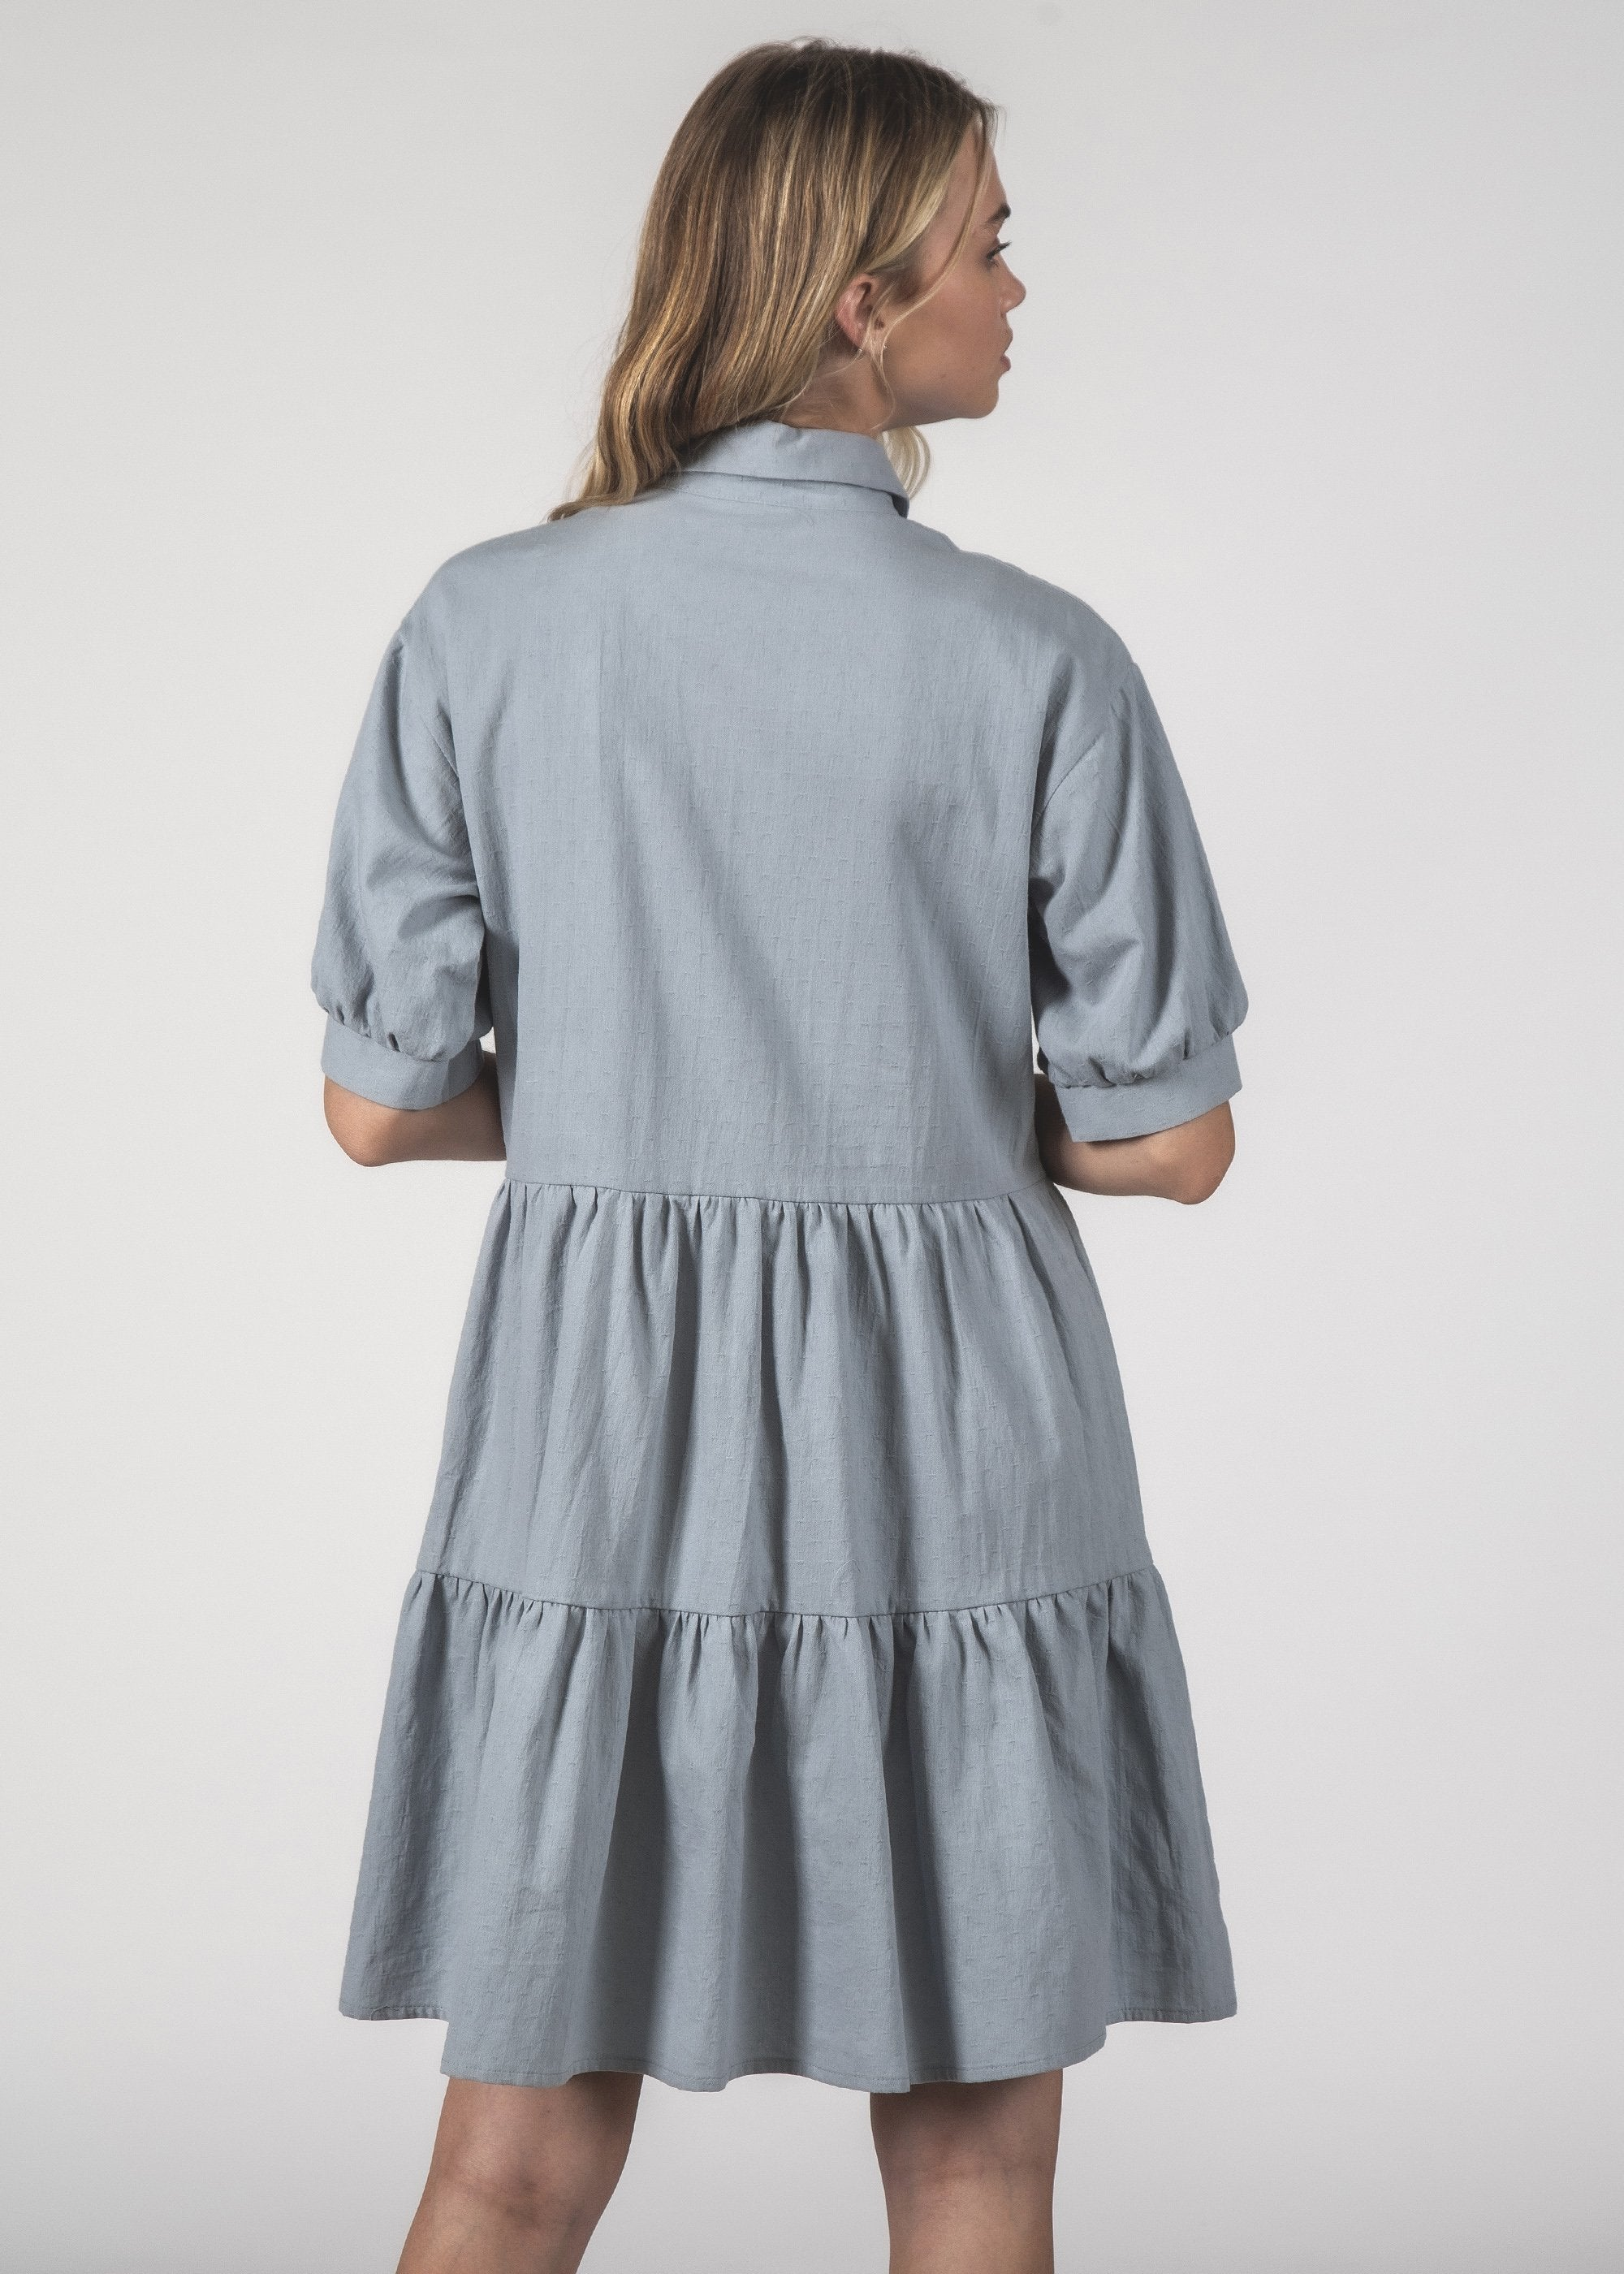 NOVA DRESS - Blue Crinkle